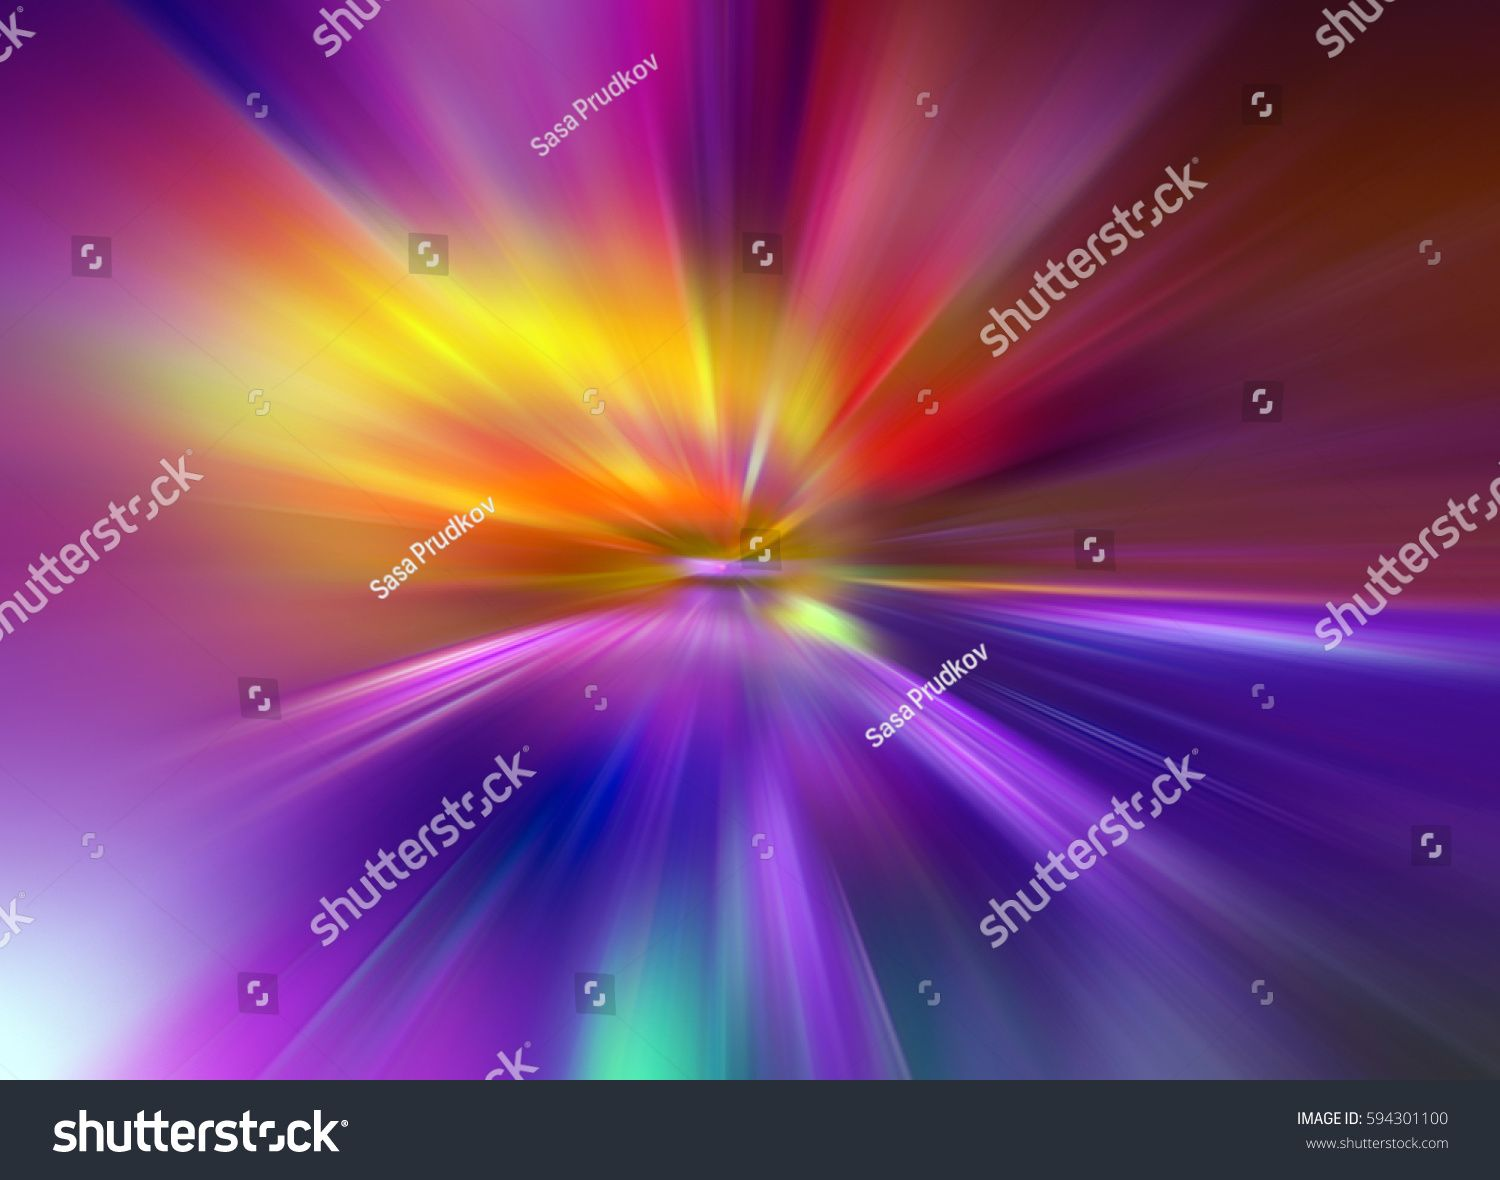 Abstract Background In Purple Pink Yellow Orange And Blue